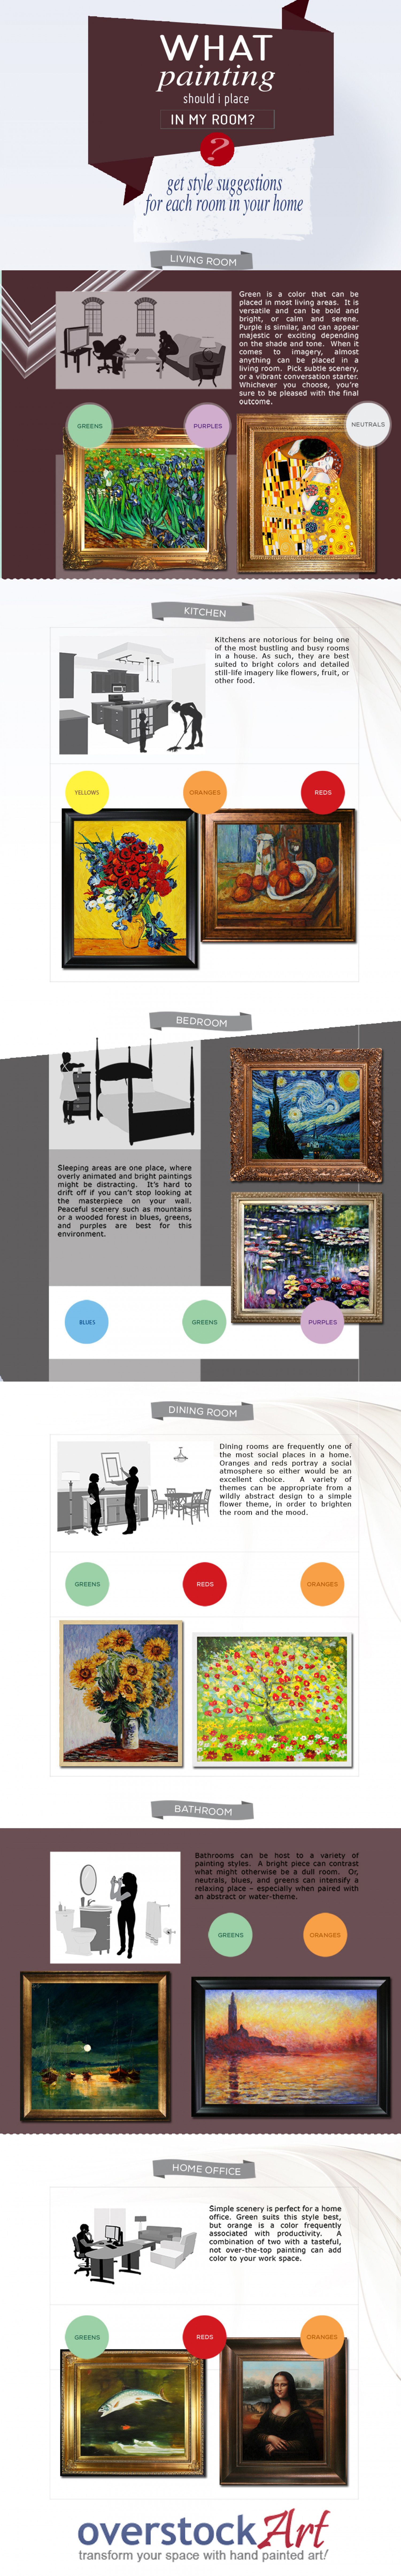 How to choose the perfect painting for your room  Infographic